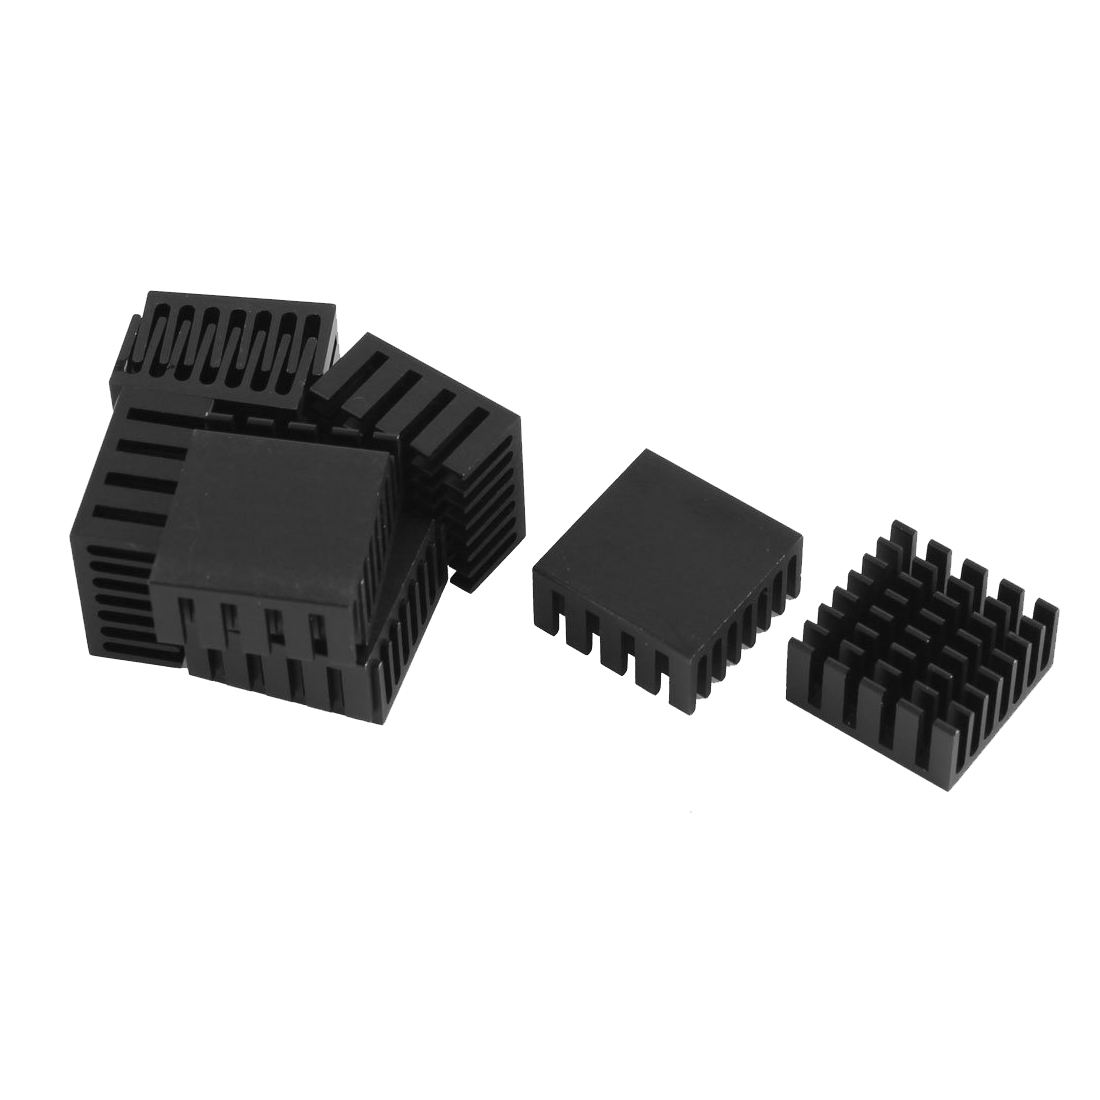 10 Pcs Black Aluminum Cooler Radiator Heat Sink Heatsink 20mm x 20mm x 10mm 10 pcs black aluminum cooler radiator heat sink heatsink 20mm x 20mm x 10mm